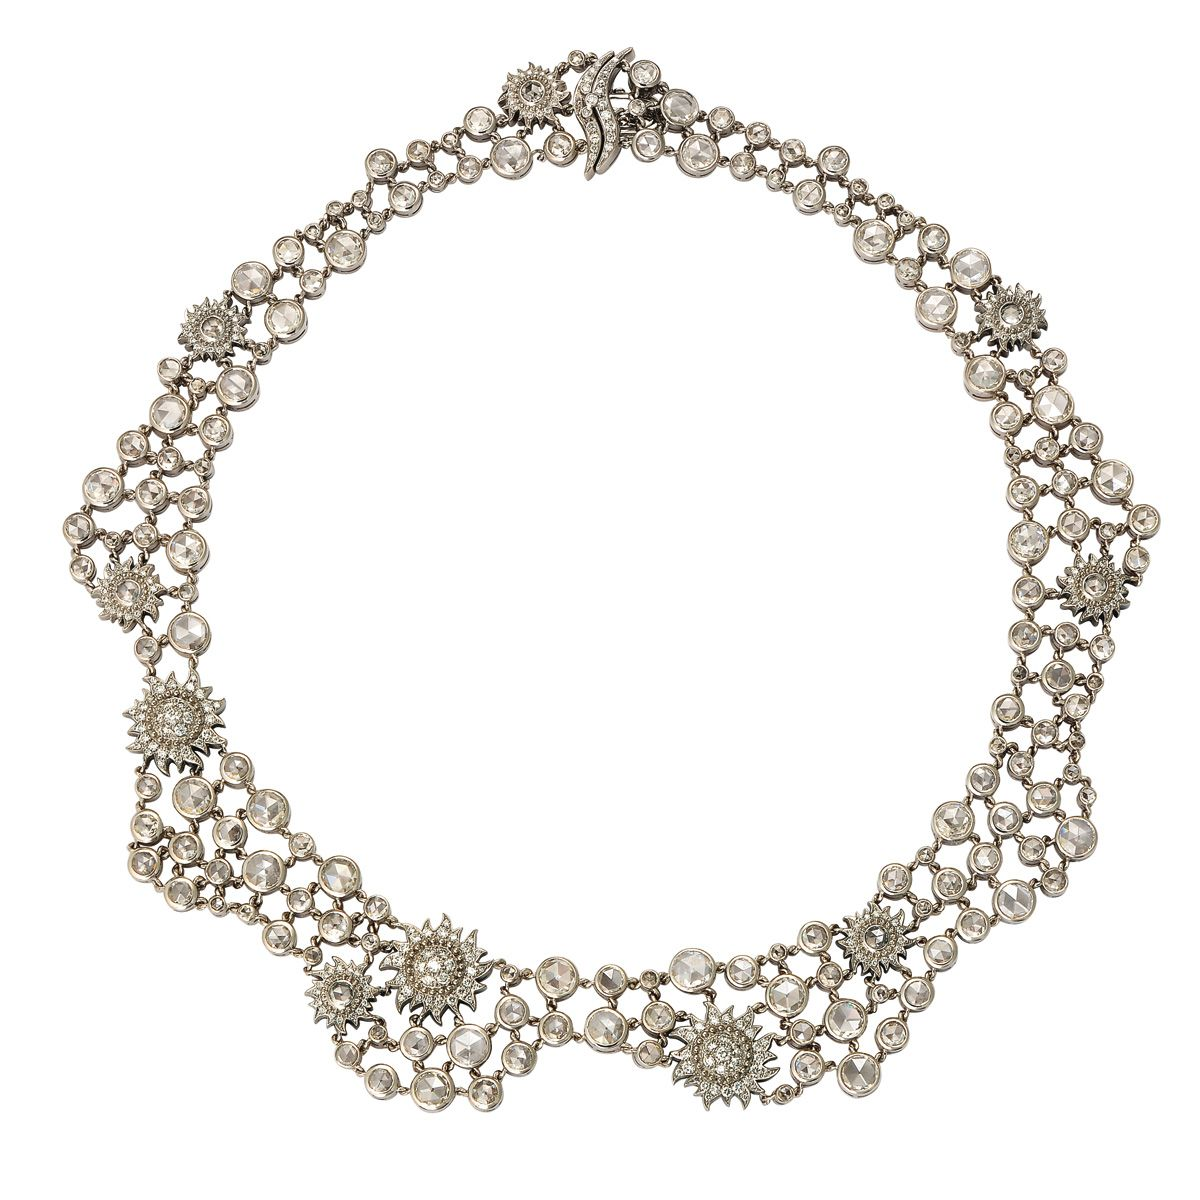 Ava necklace in karat white gold and rosecut diamonds sparkly